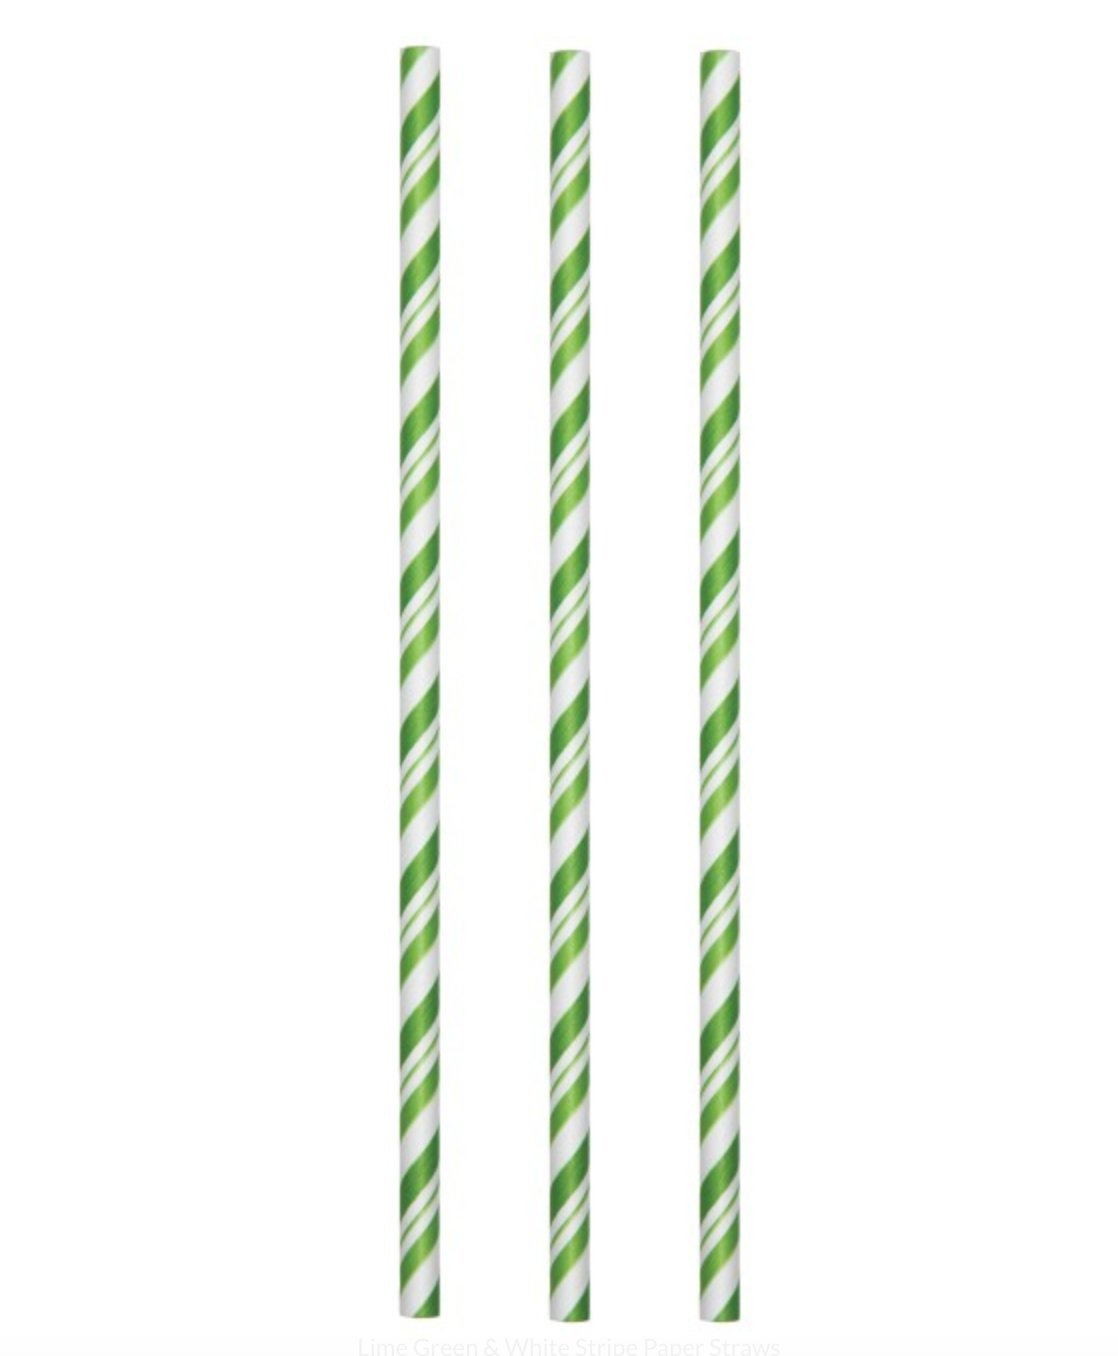 What straws looked like when the Constitution was written vs. the assault straws of today... https://t.co/XDENllfyz6